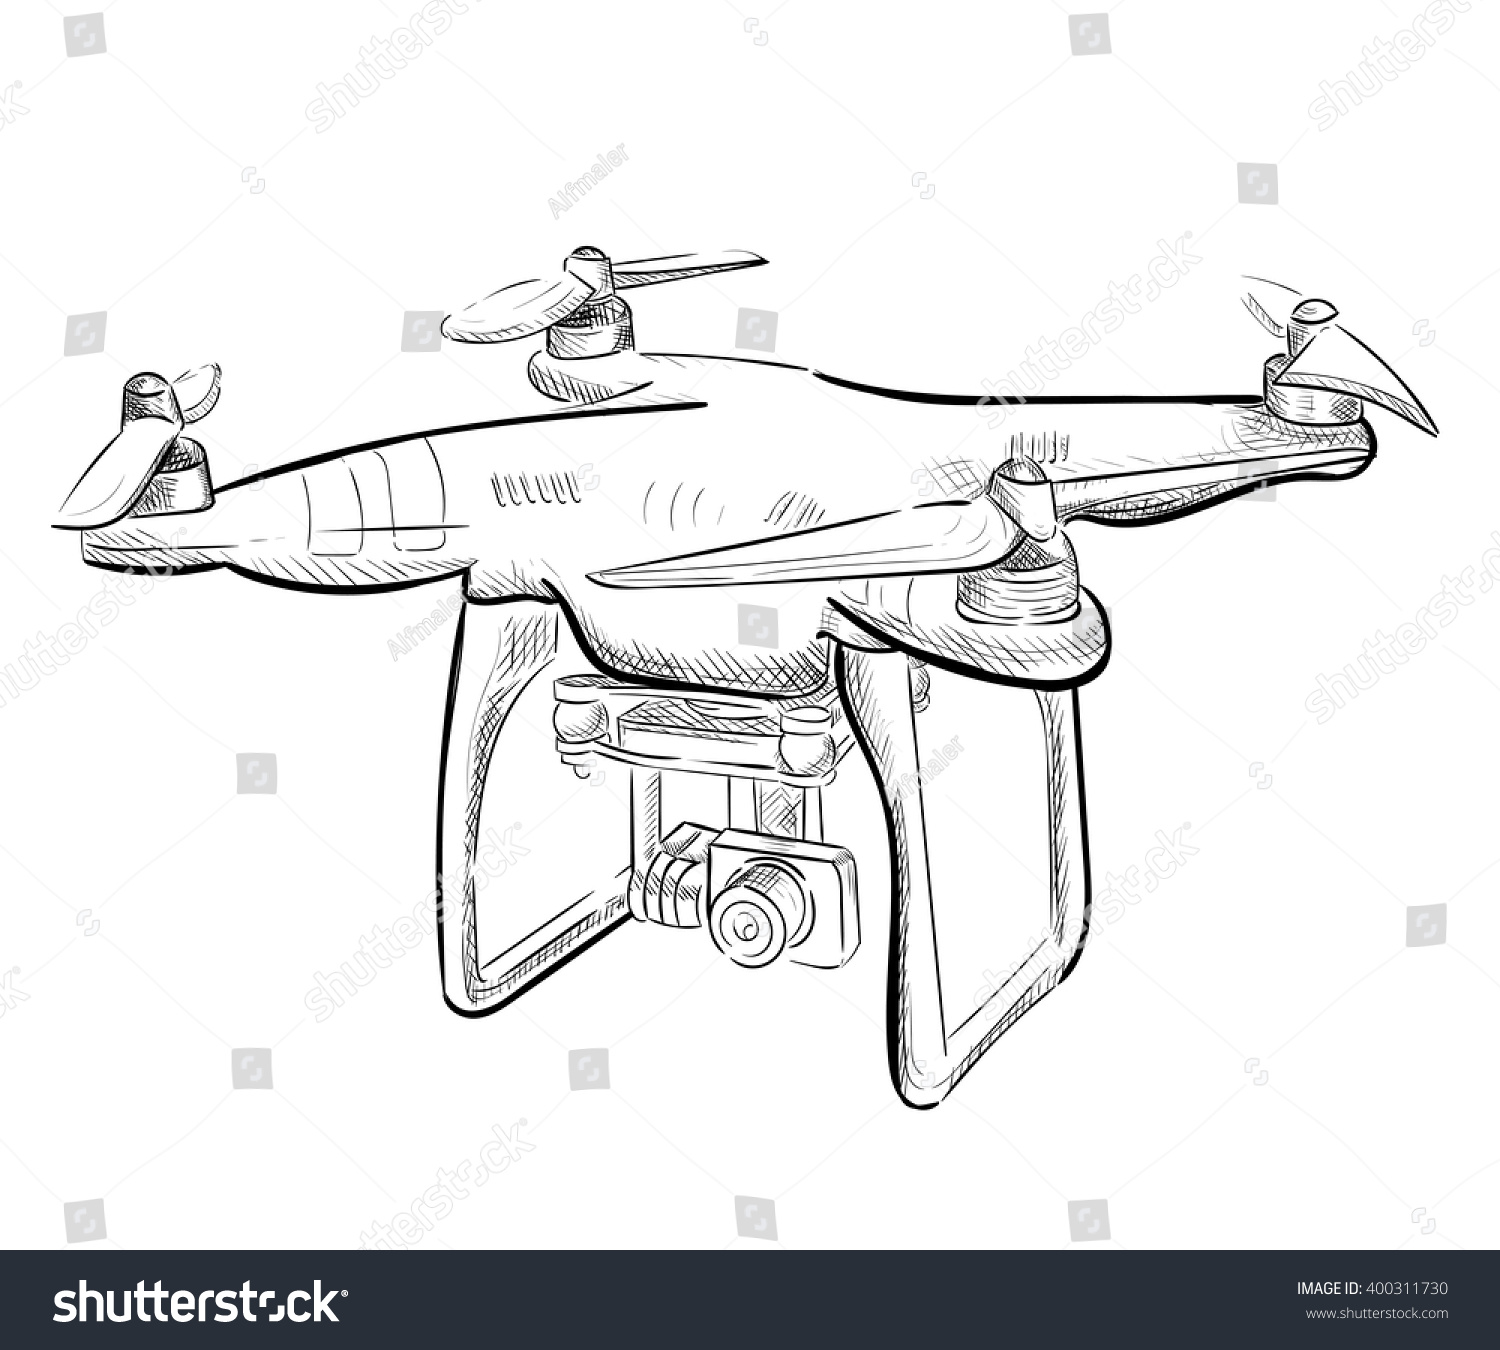 quadcopter for aerial photography with Stock Vector Hand Draw Vector Illustration Aerial Vehicle Quadrocopter Air Drone Hovering Drone Sketch on Yuneec yunq500114a brushless motor a for in addition Stock Vector Hand Draw Vector Illustration Aerial Vehicle Quadrocopter Air Drone Hovering Drone Sketch likewise ments additionally Mini Quad Racing Guide additionally Bali Rice Fields From Above.